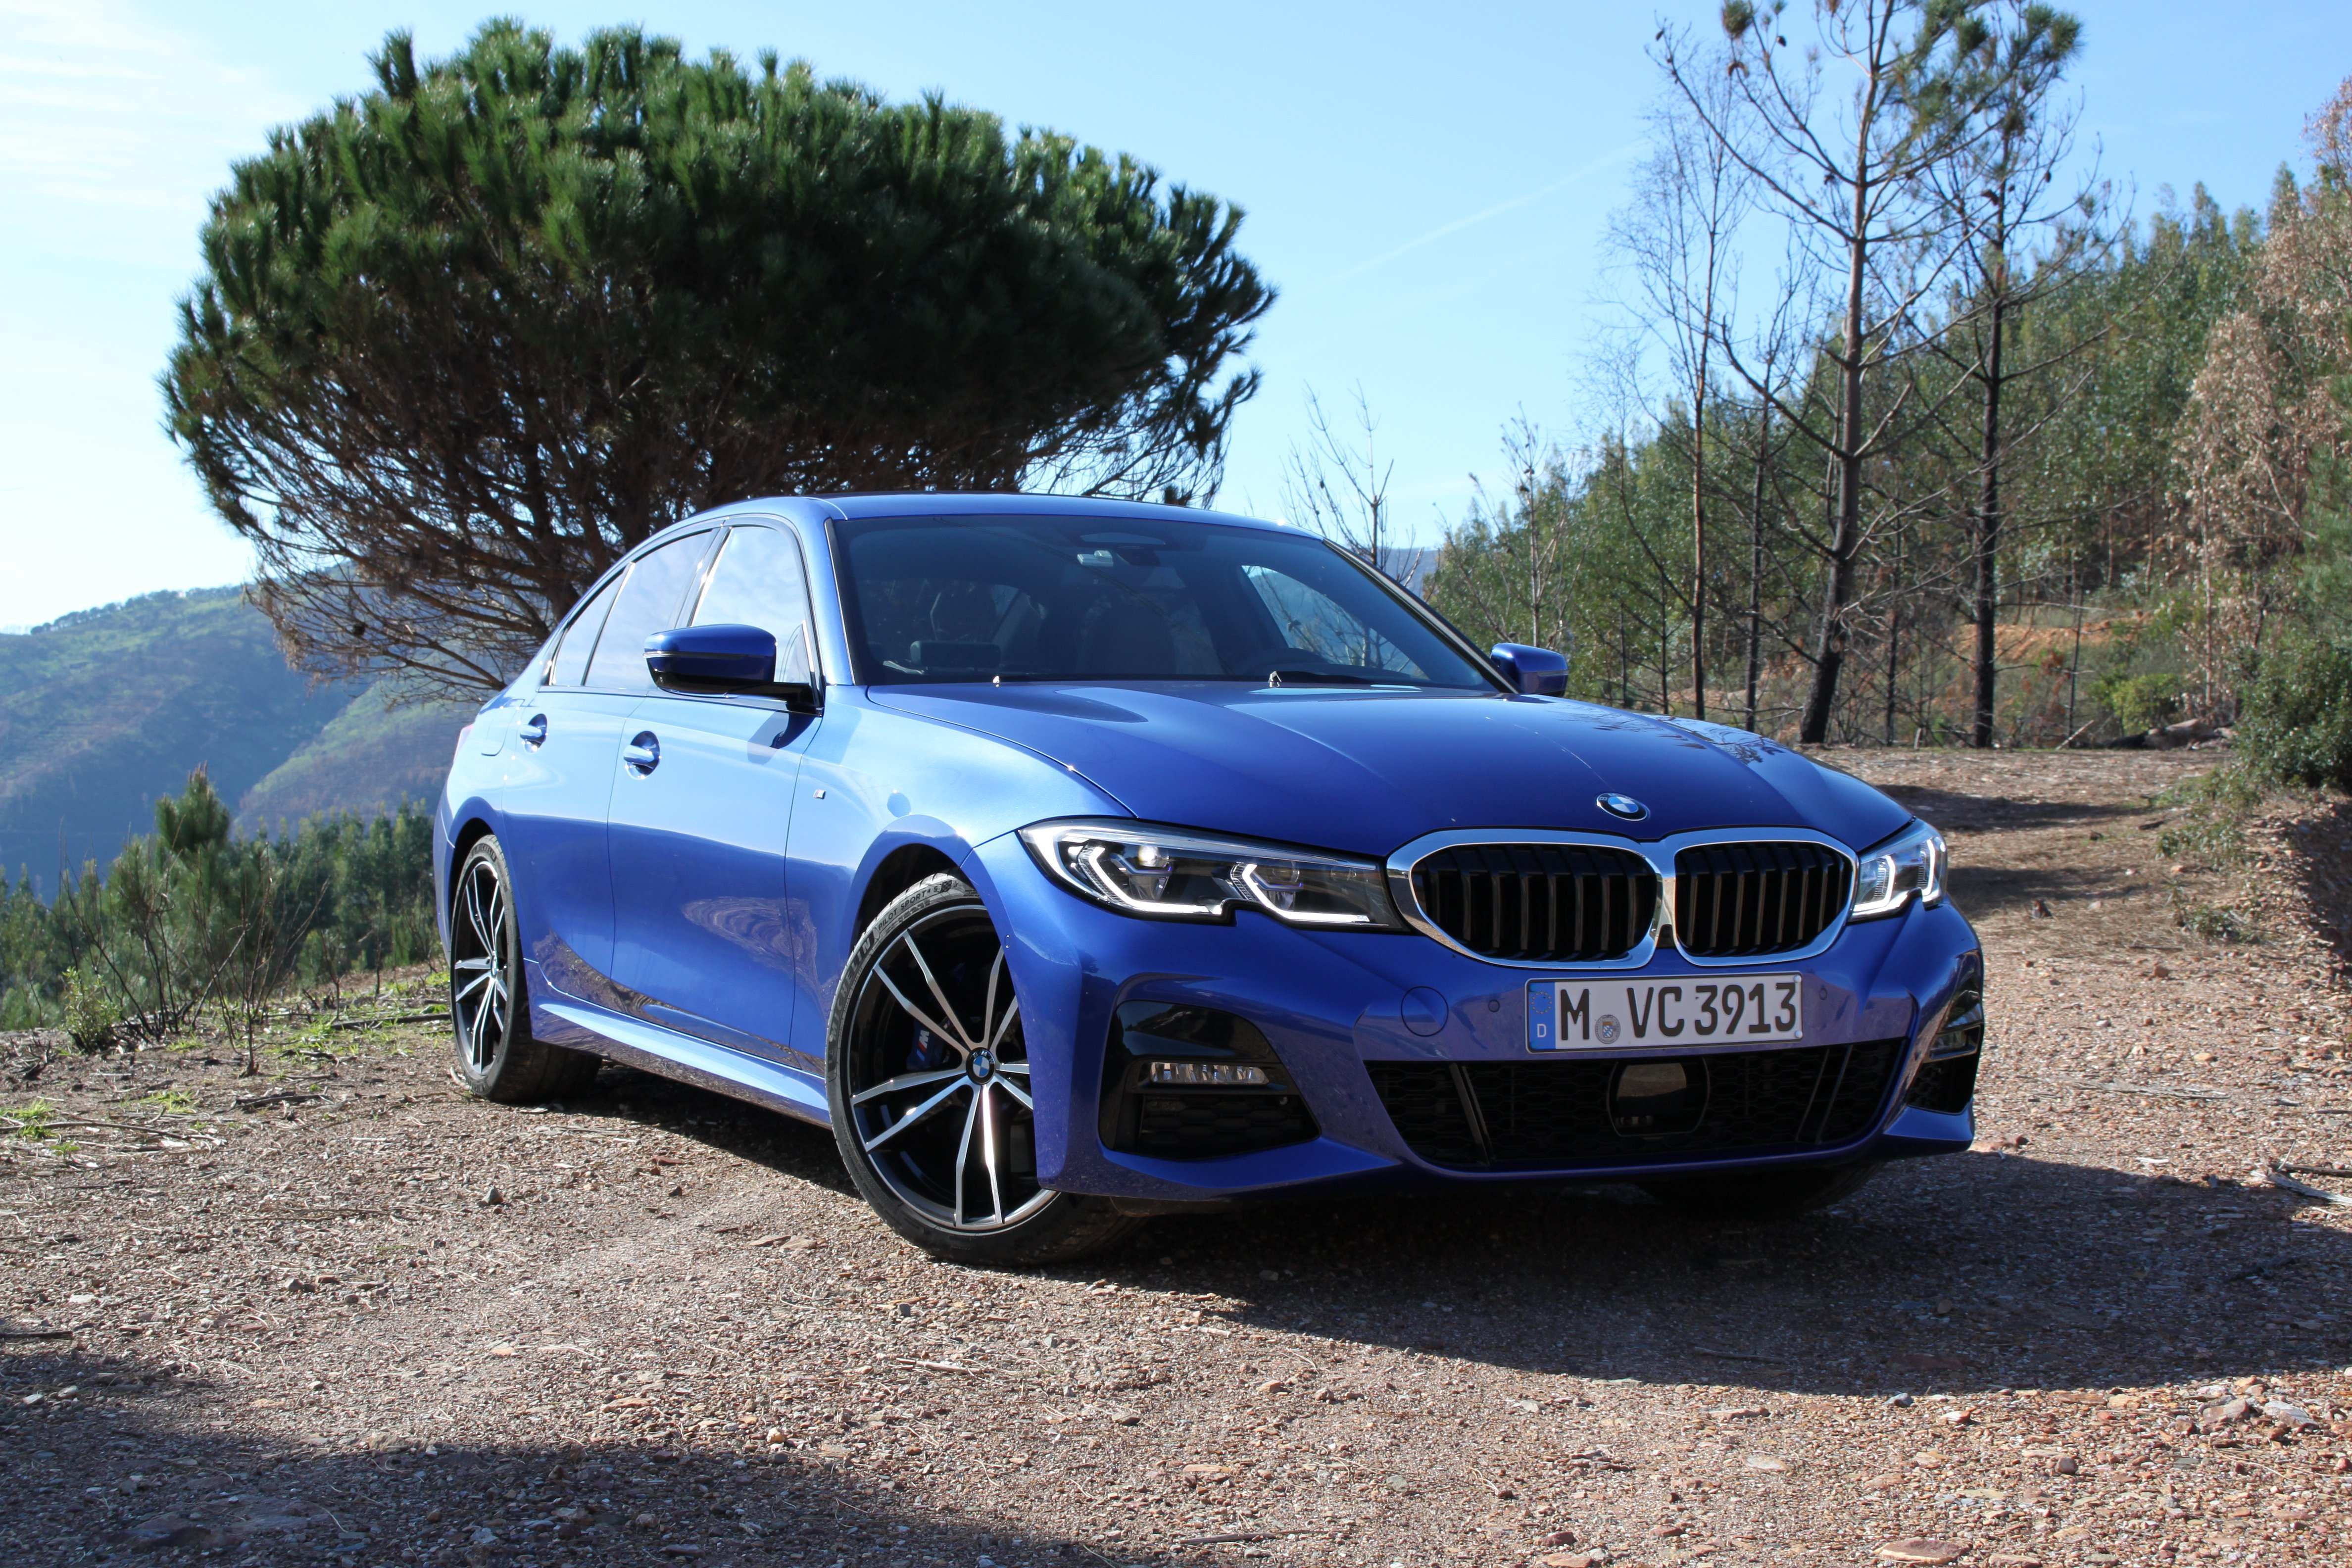 90 A BMW Series 3 2020 Research New